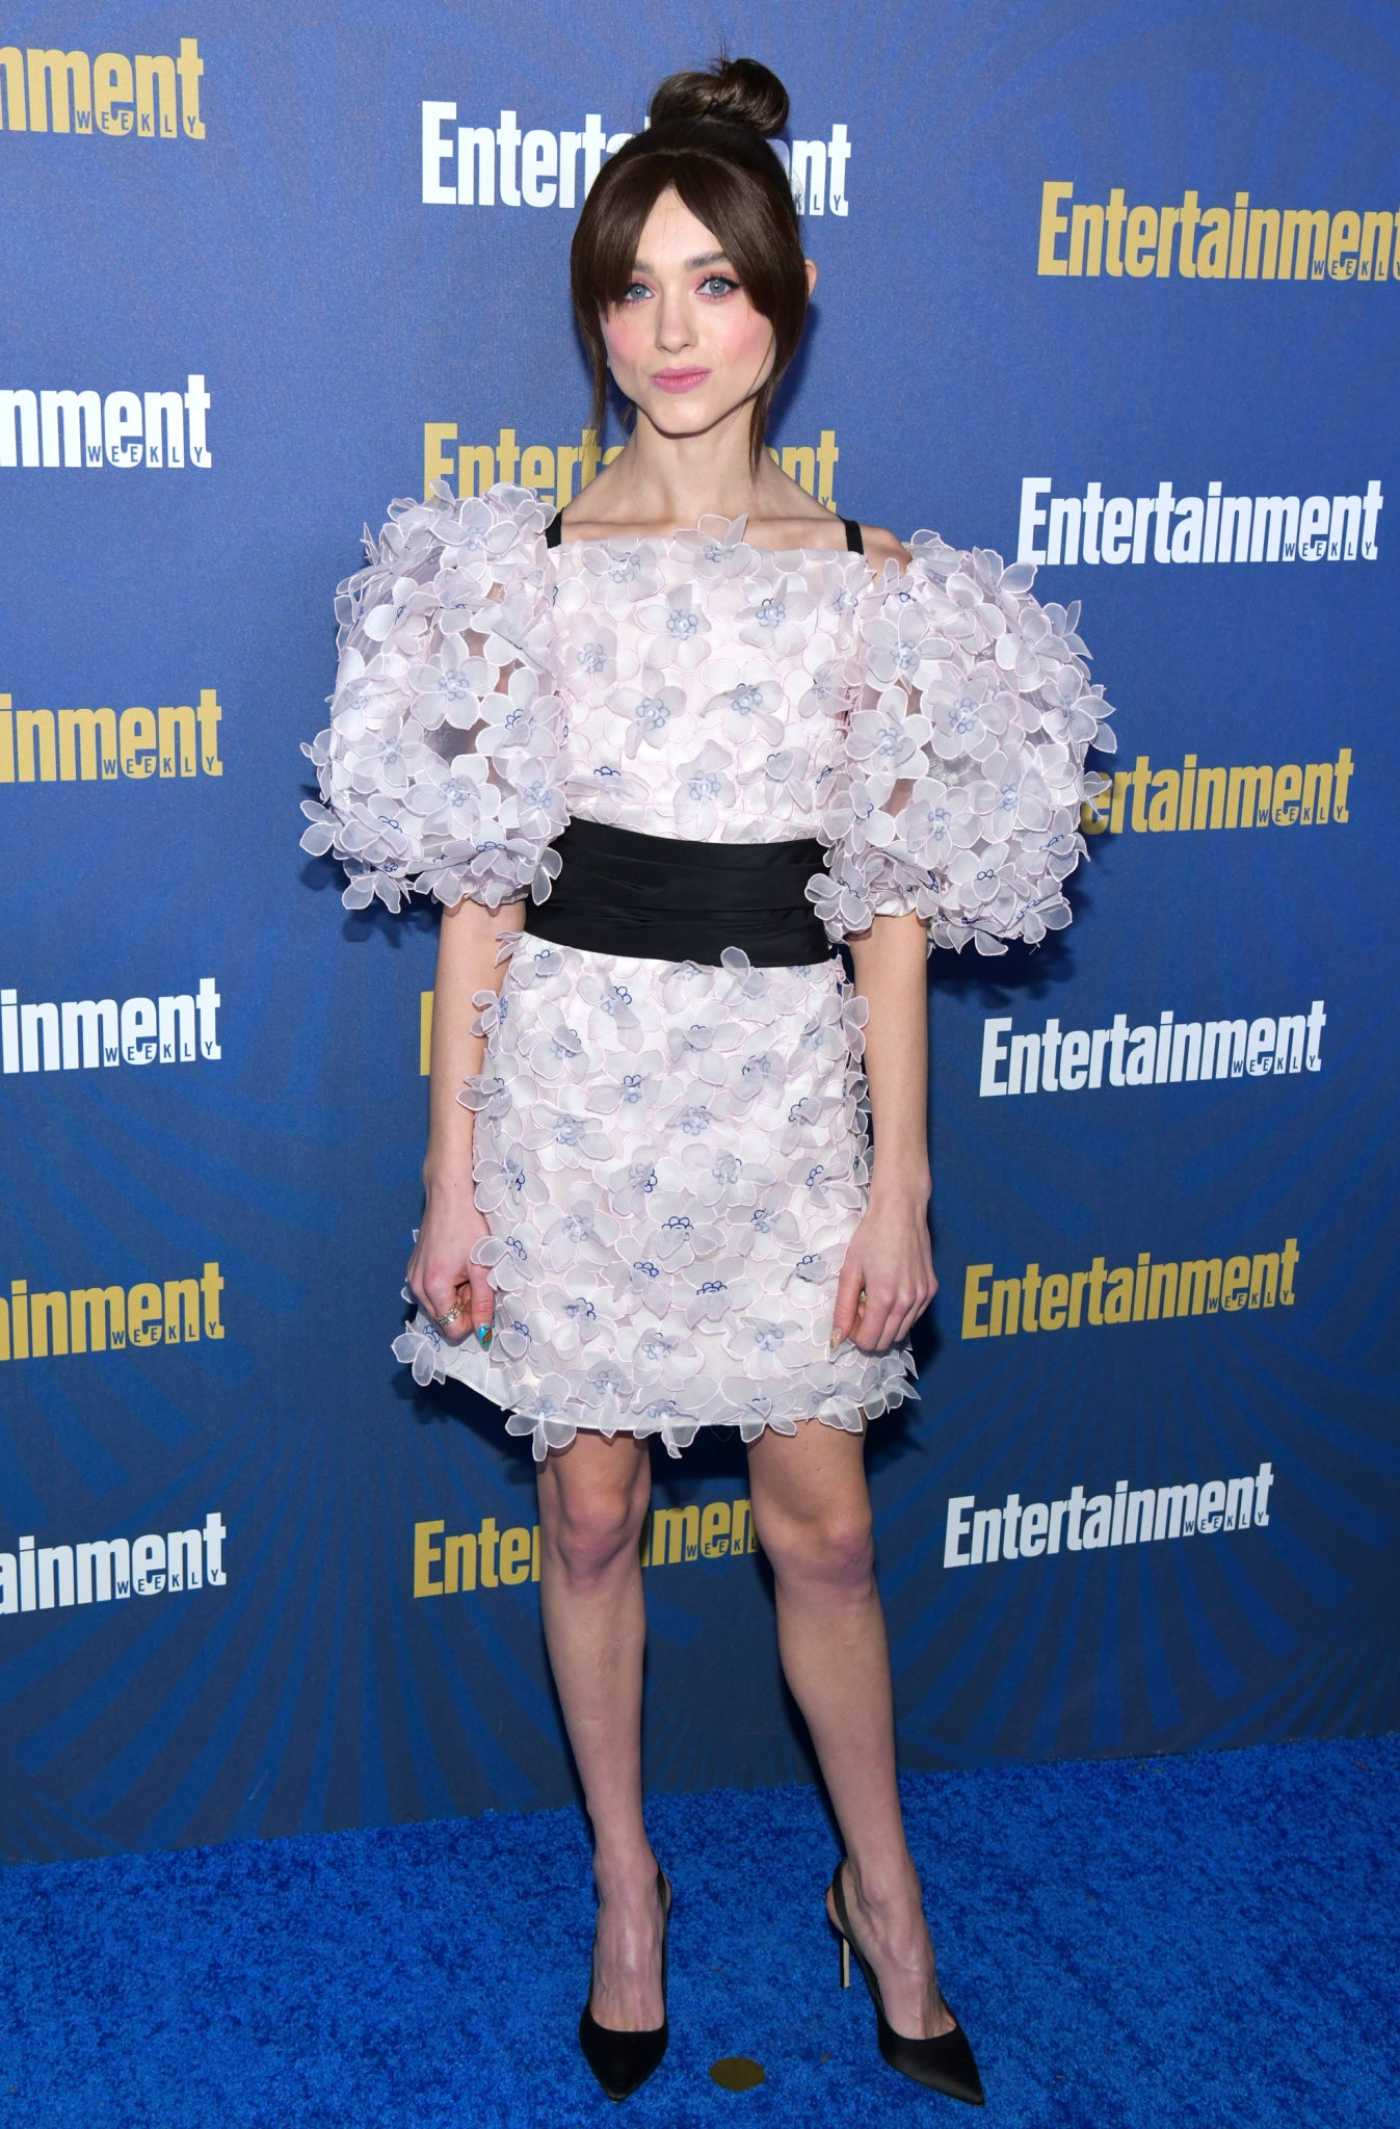 Natalia Dyer Attends 2020 Entertainment Weekly Celebrates the SAG Award Nominees in Los Angeles 01/18/2020